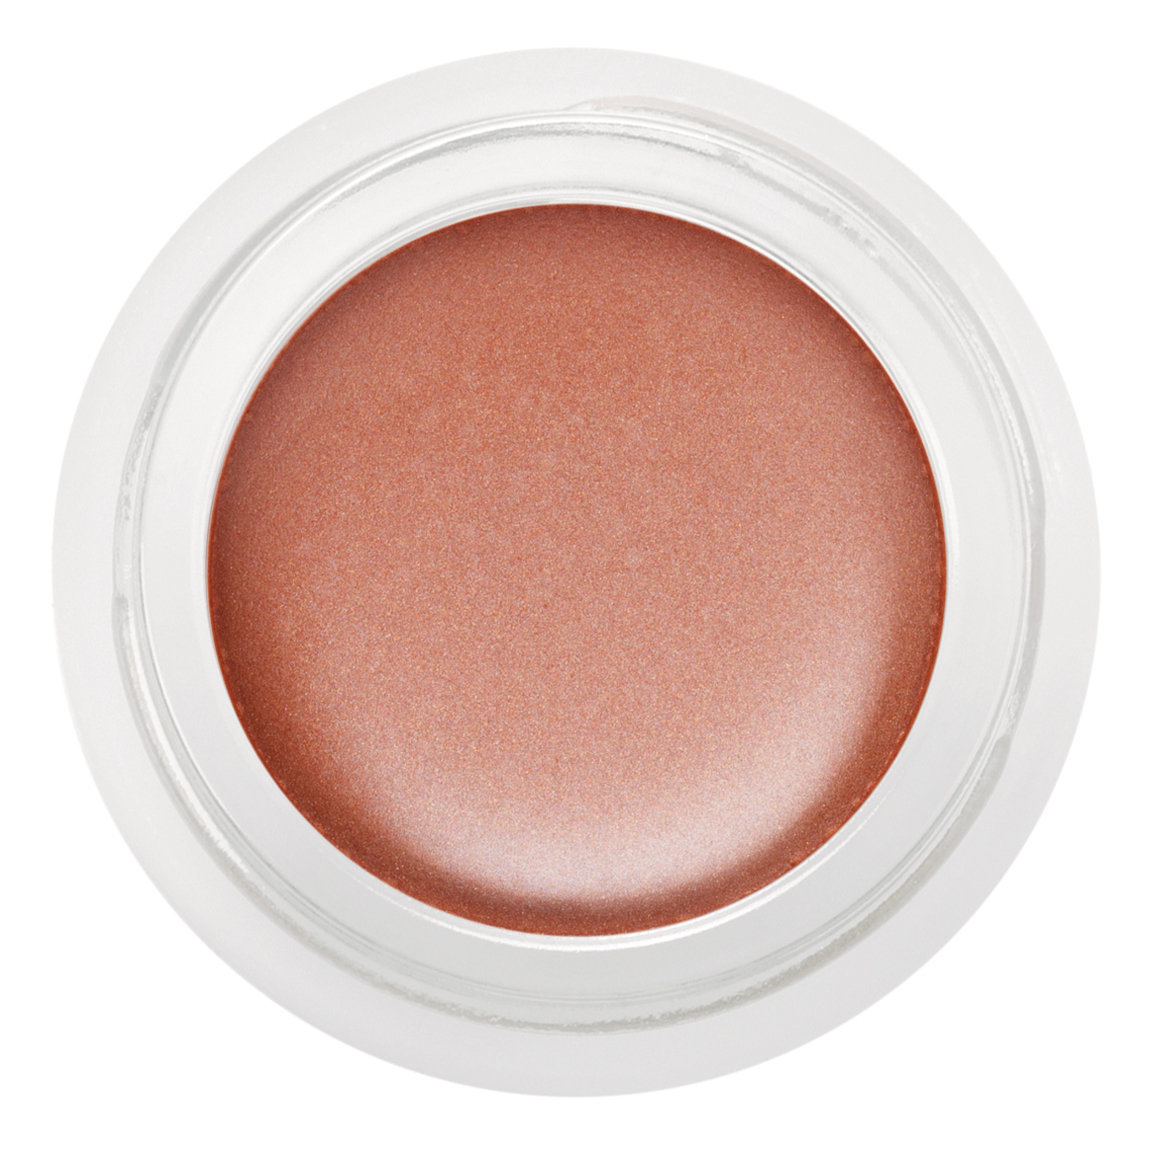 rms beauty Peach Luminizer product swatch.